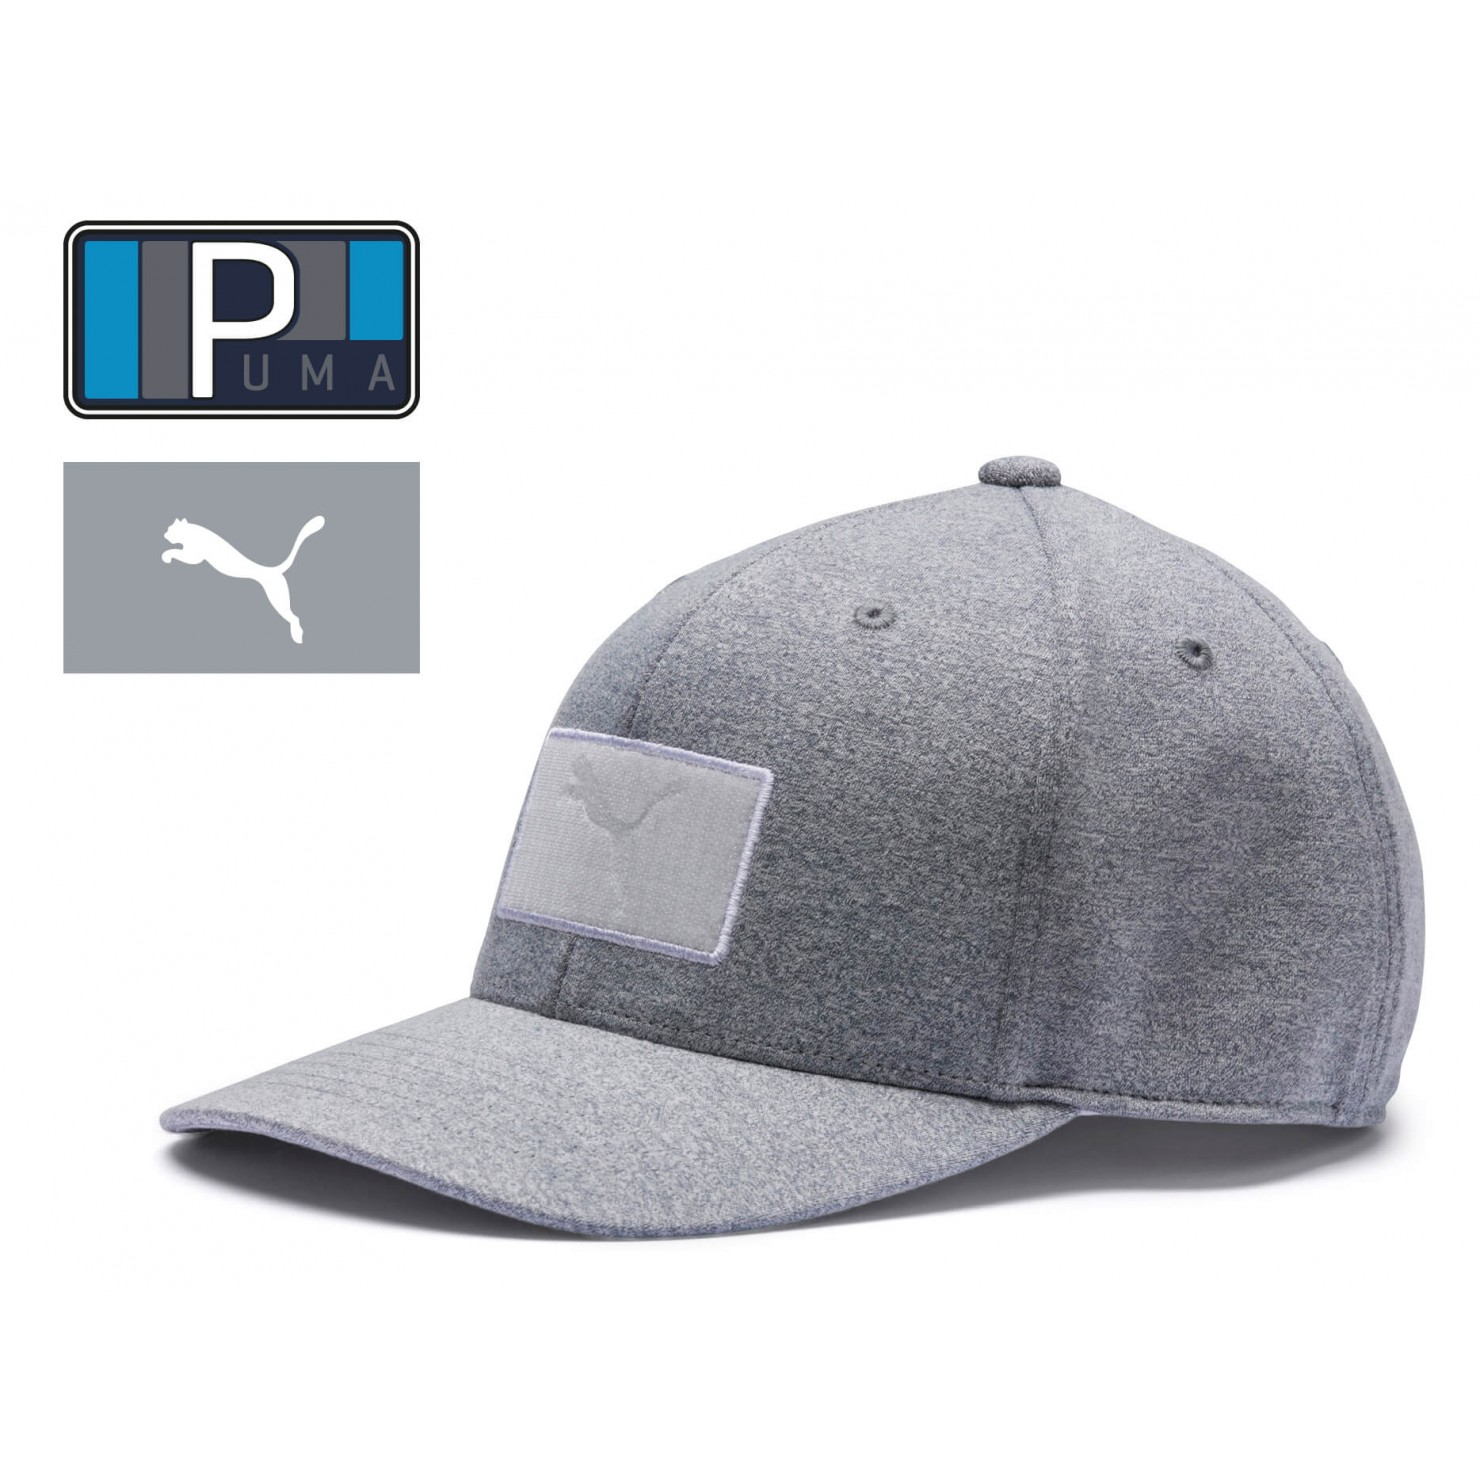 f350e10e019 Details about Puma Golf 2019 Utility Patch 110 Snapback Cap Hat - Multiple  Colors OSFM